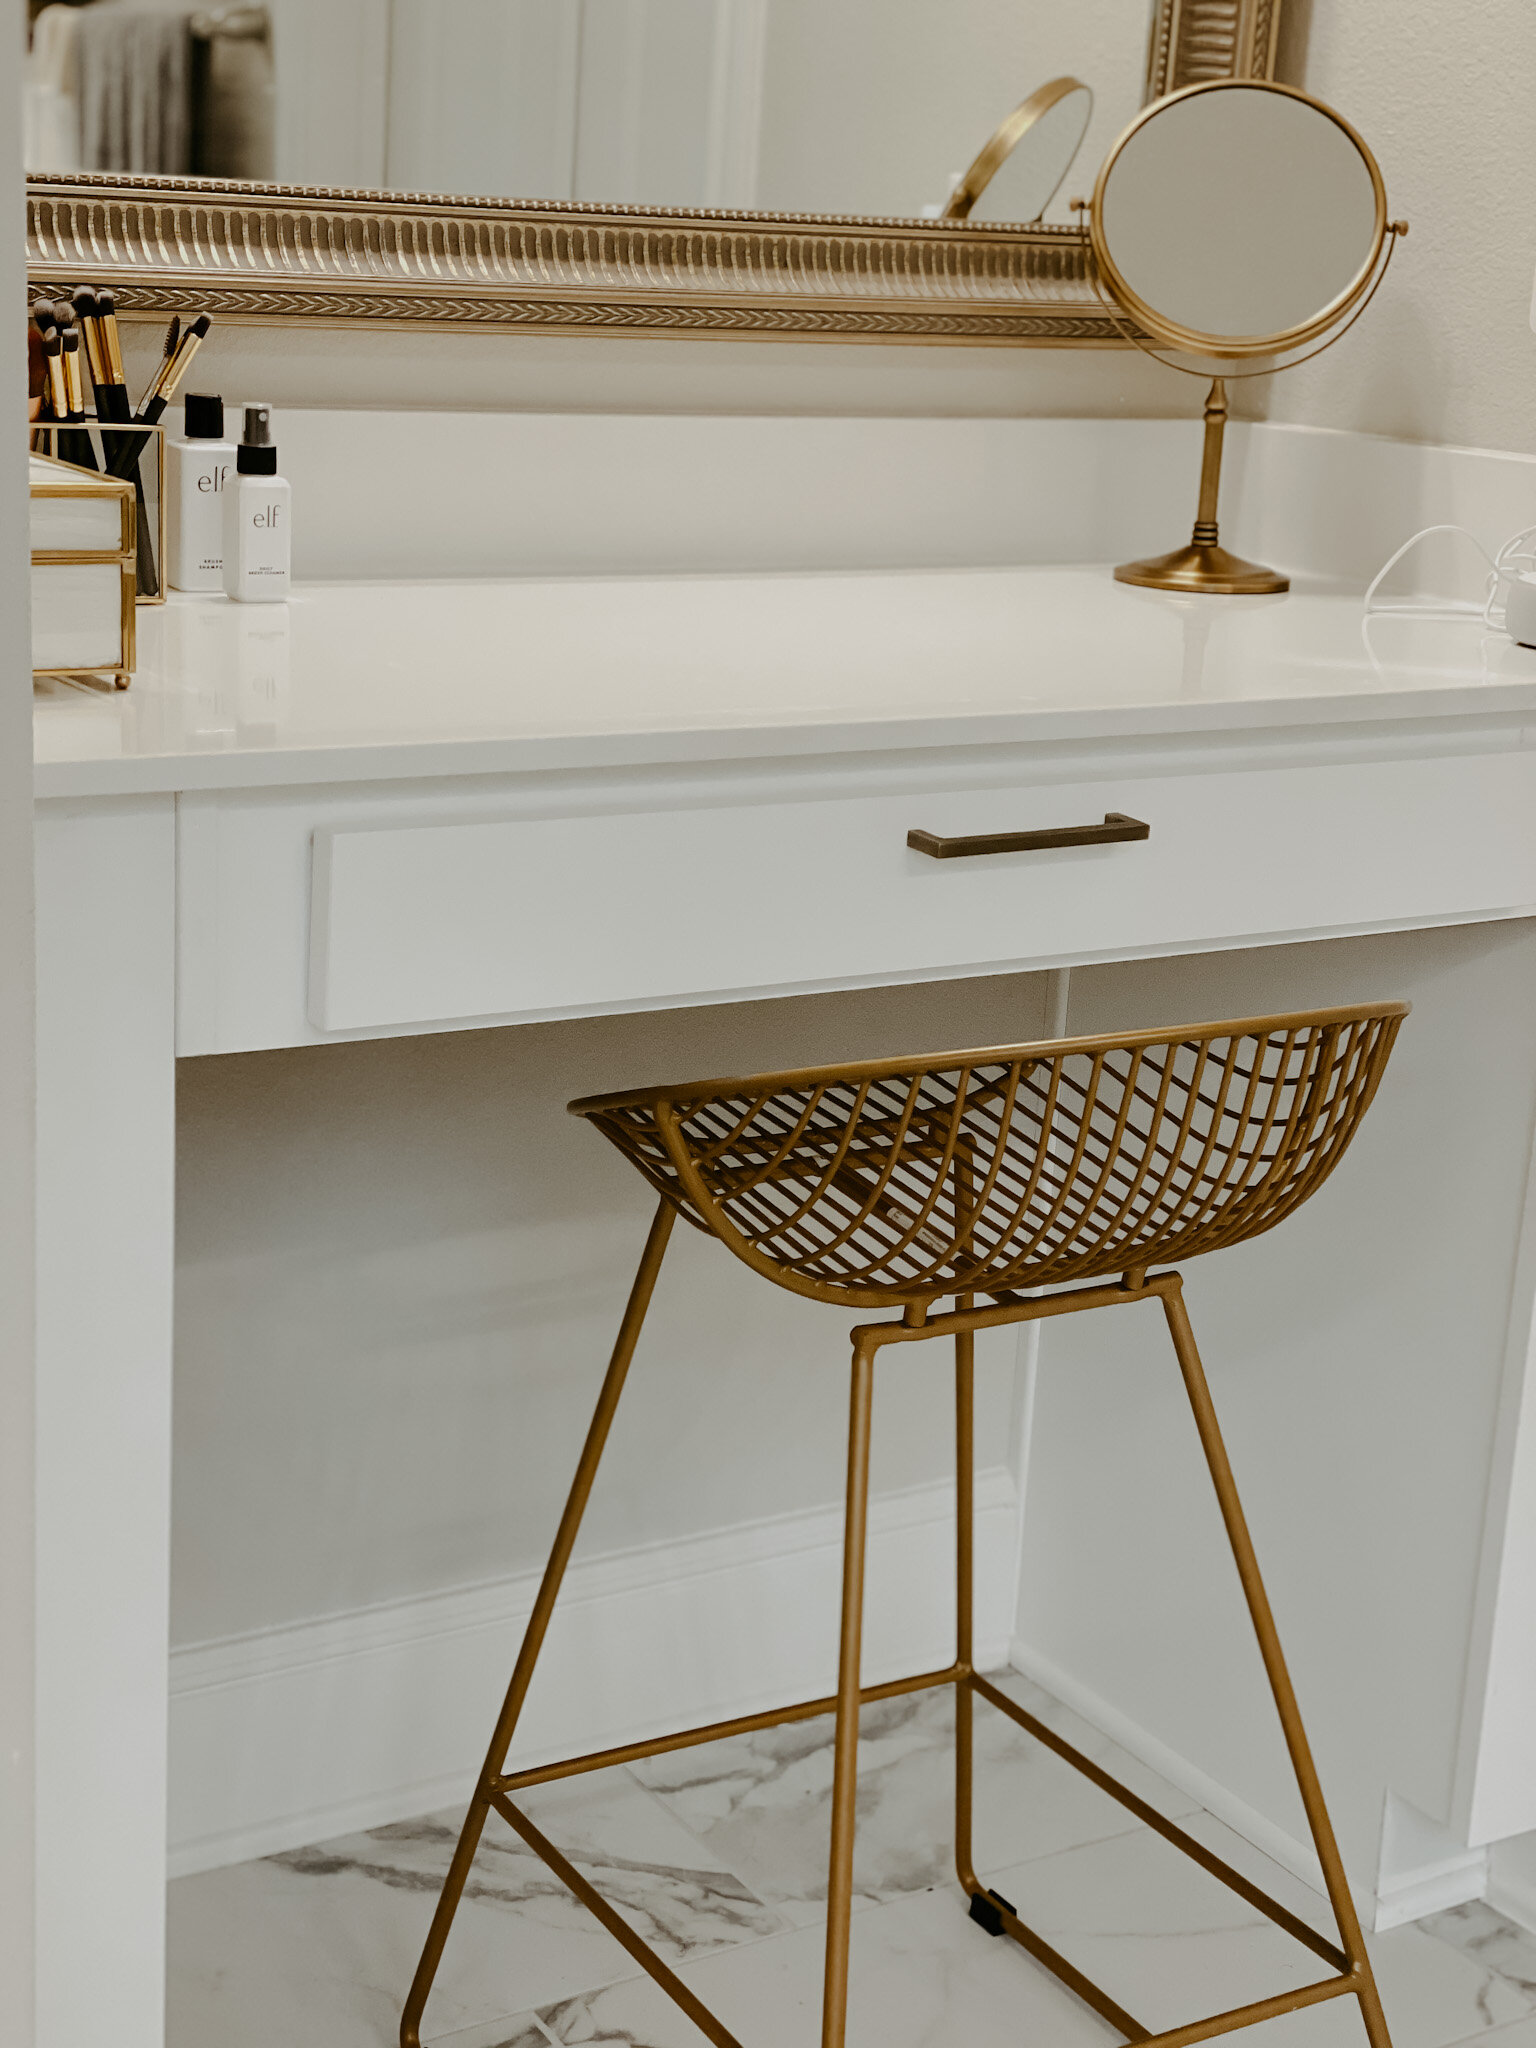 Tips On Setting Up Your Makeup Vanity Decor And Organization Onyee S Lifestyle